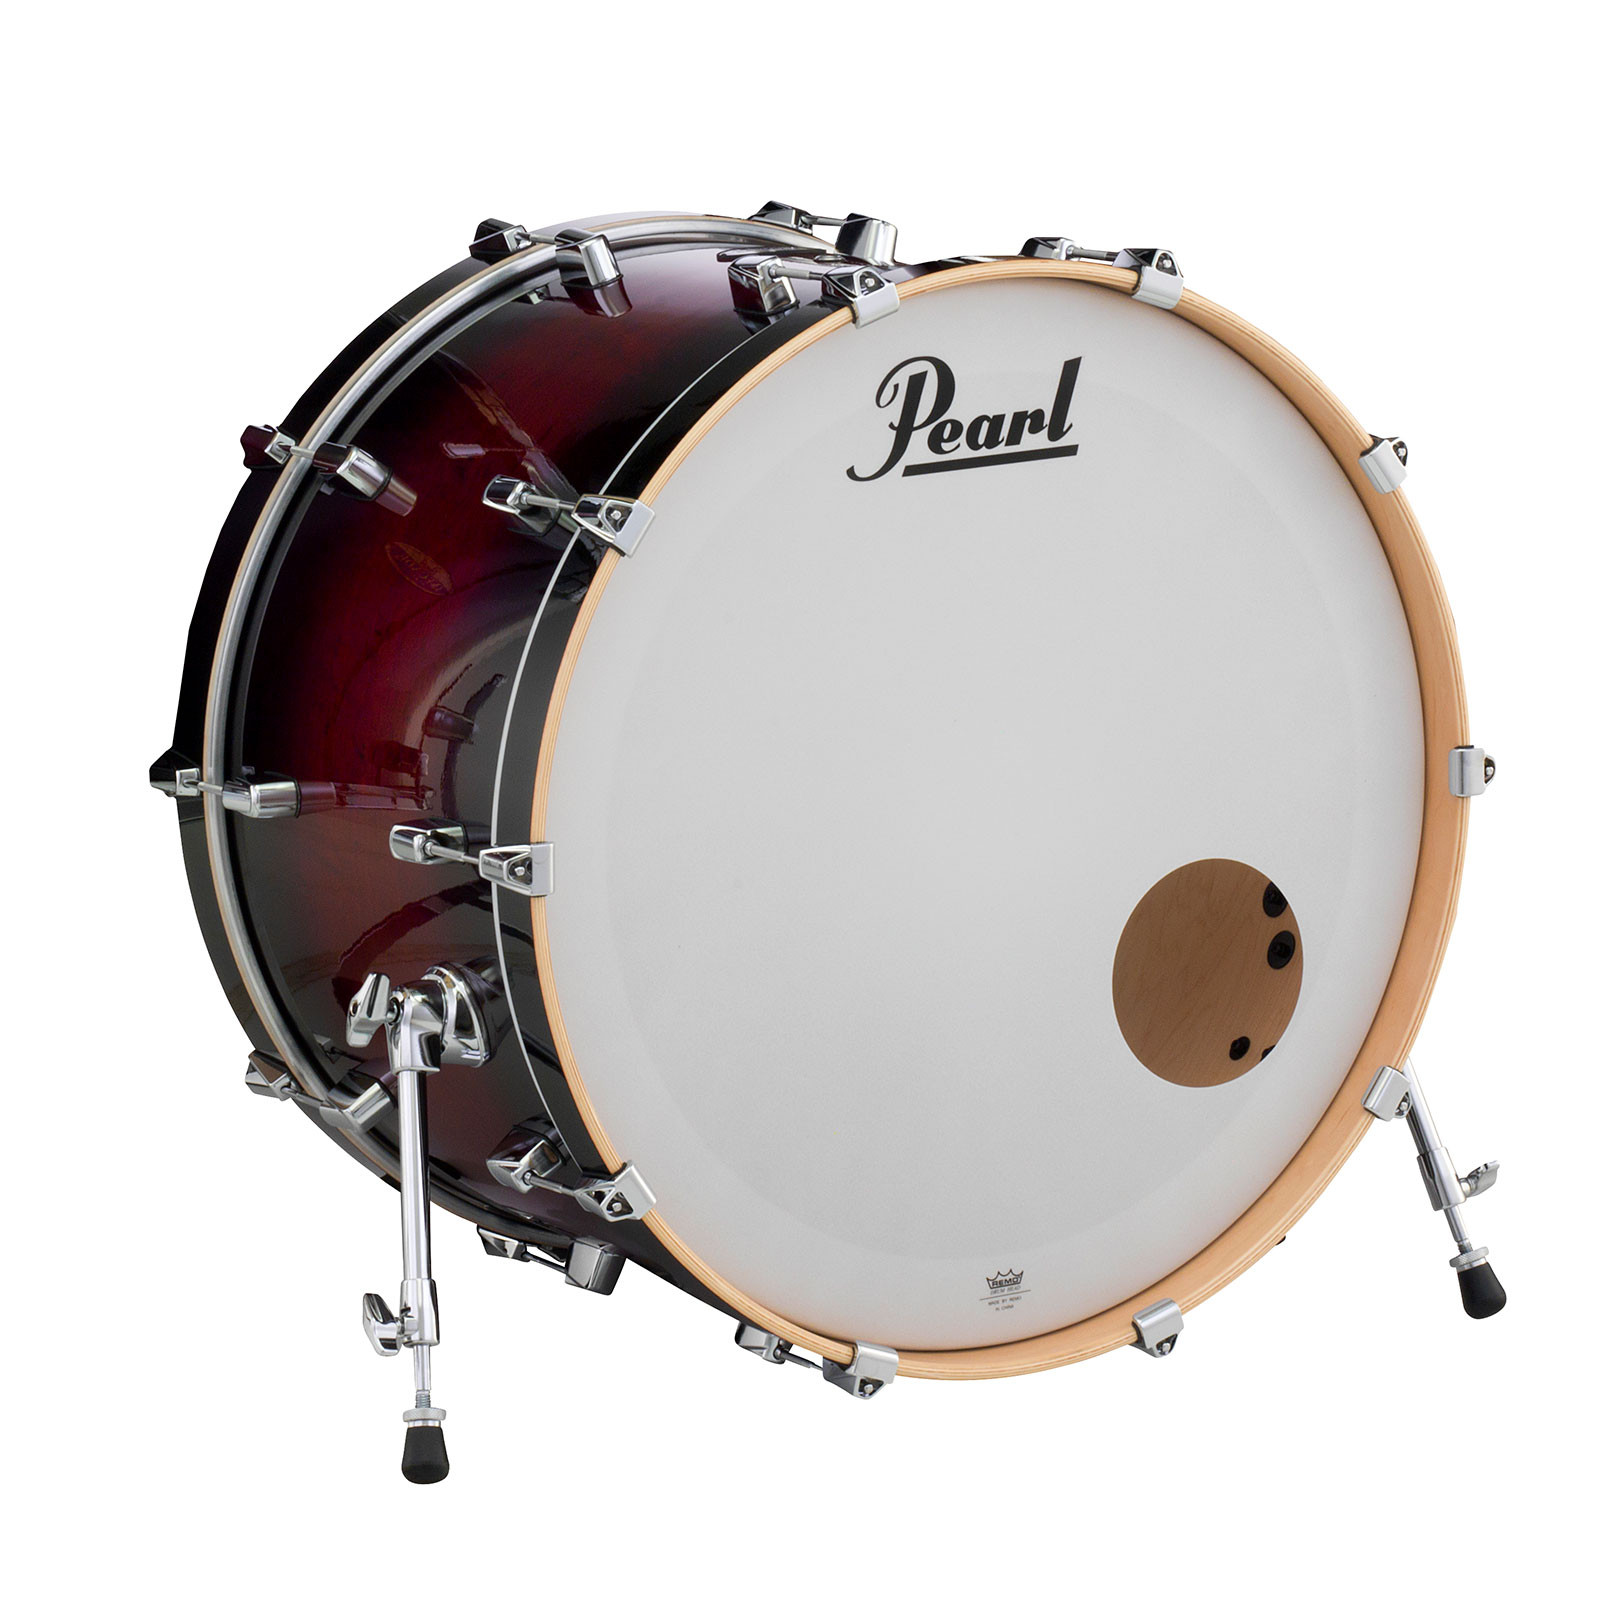 pearl dmp decade maple 24 x14 bass drum drums on sale. Black Bedroom Furniture Sets. Home Design Ideas